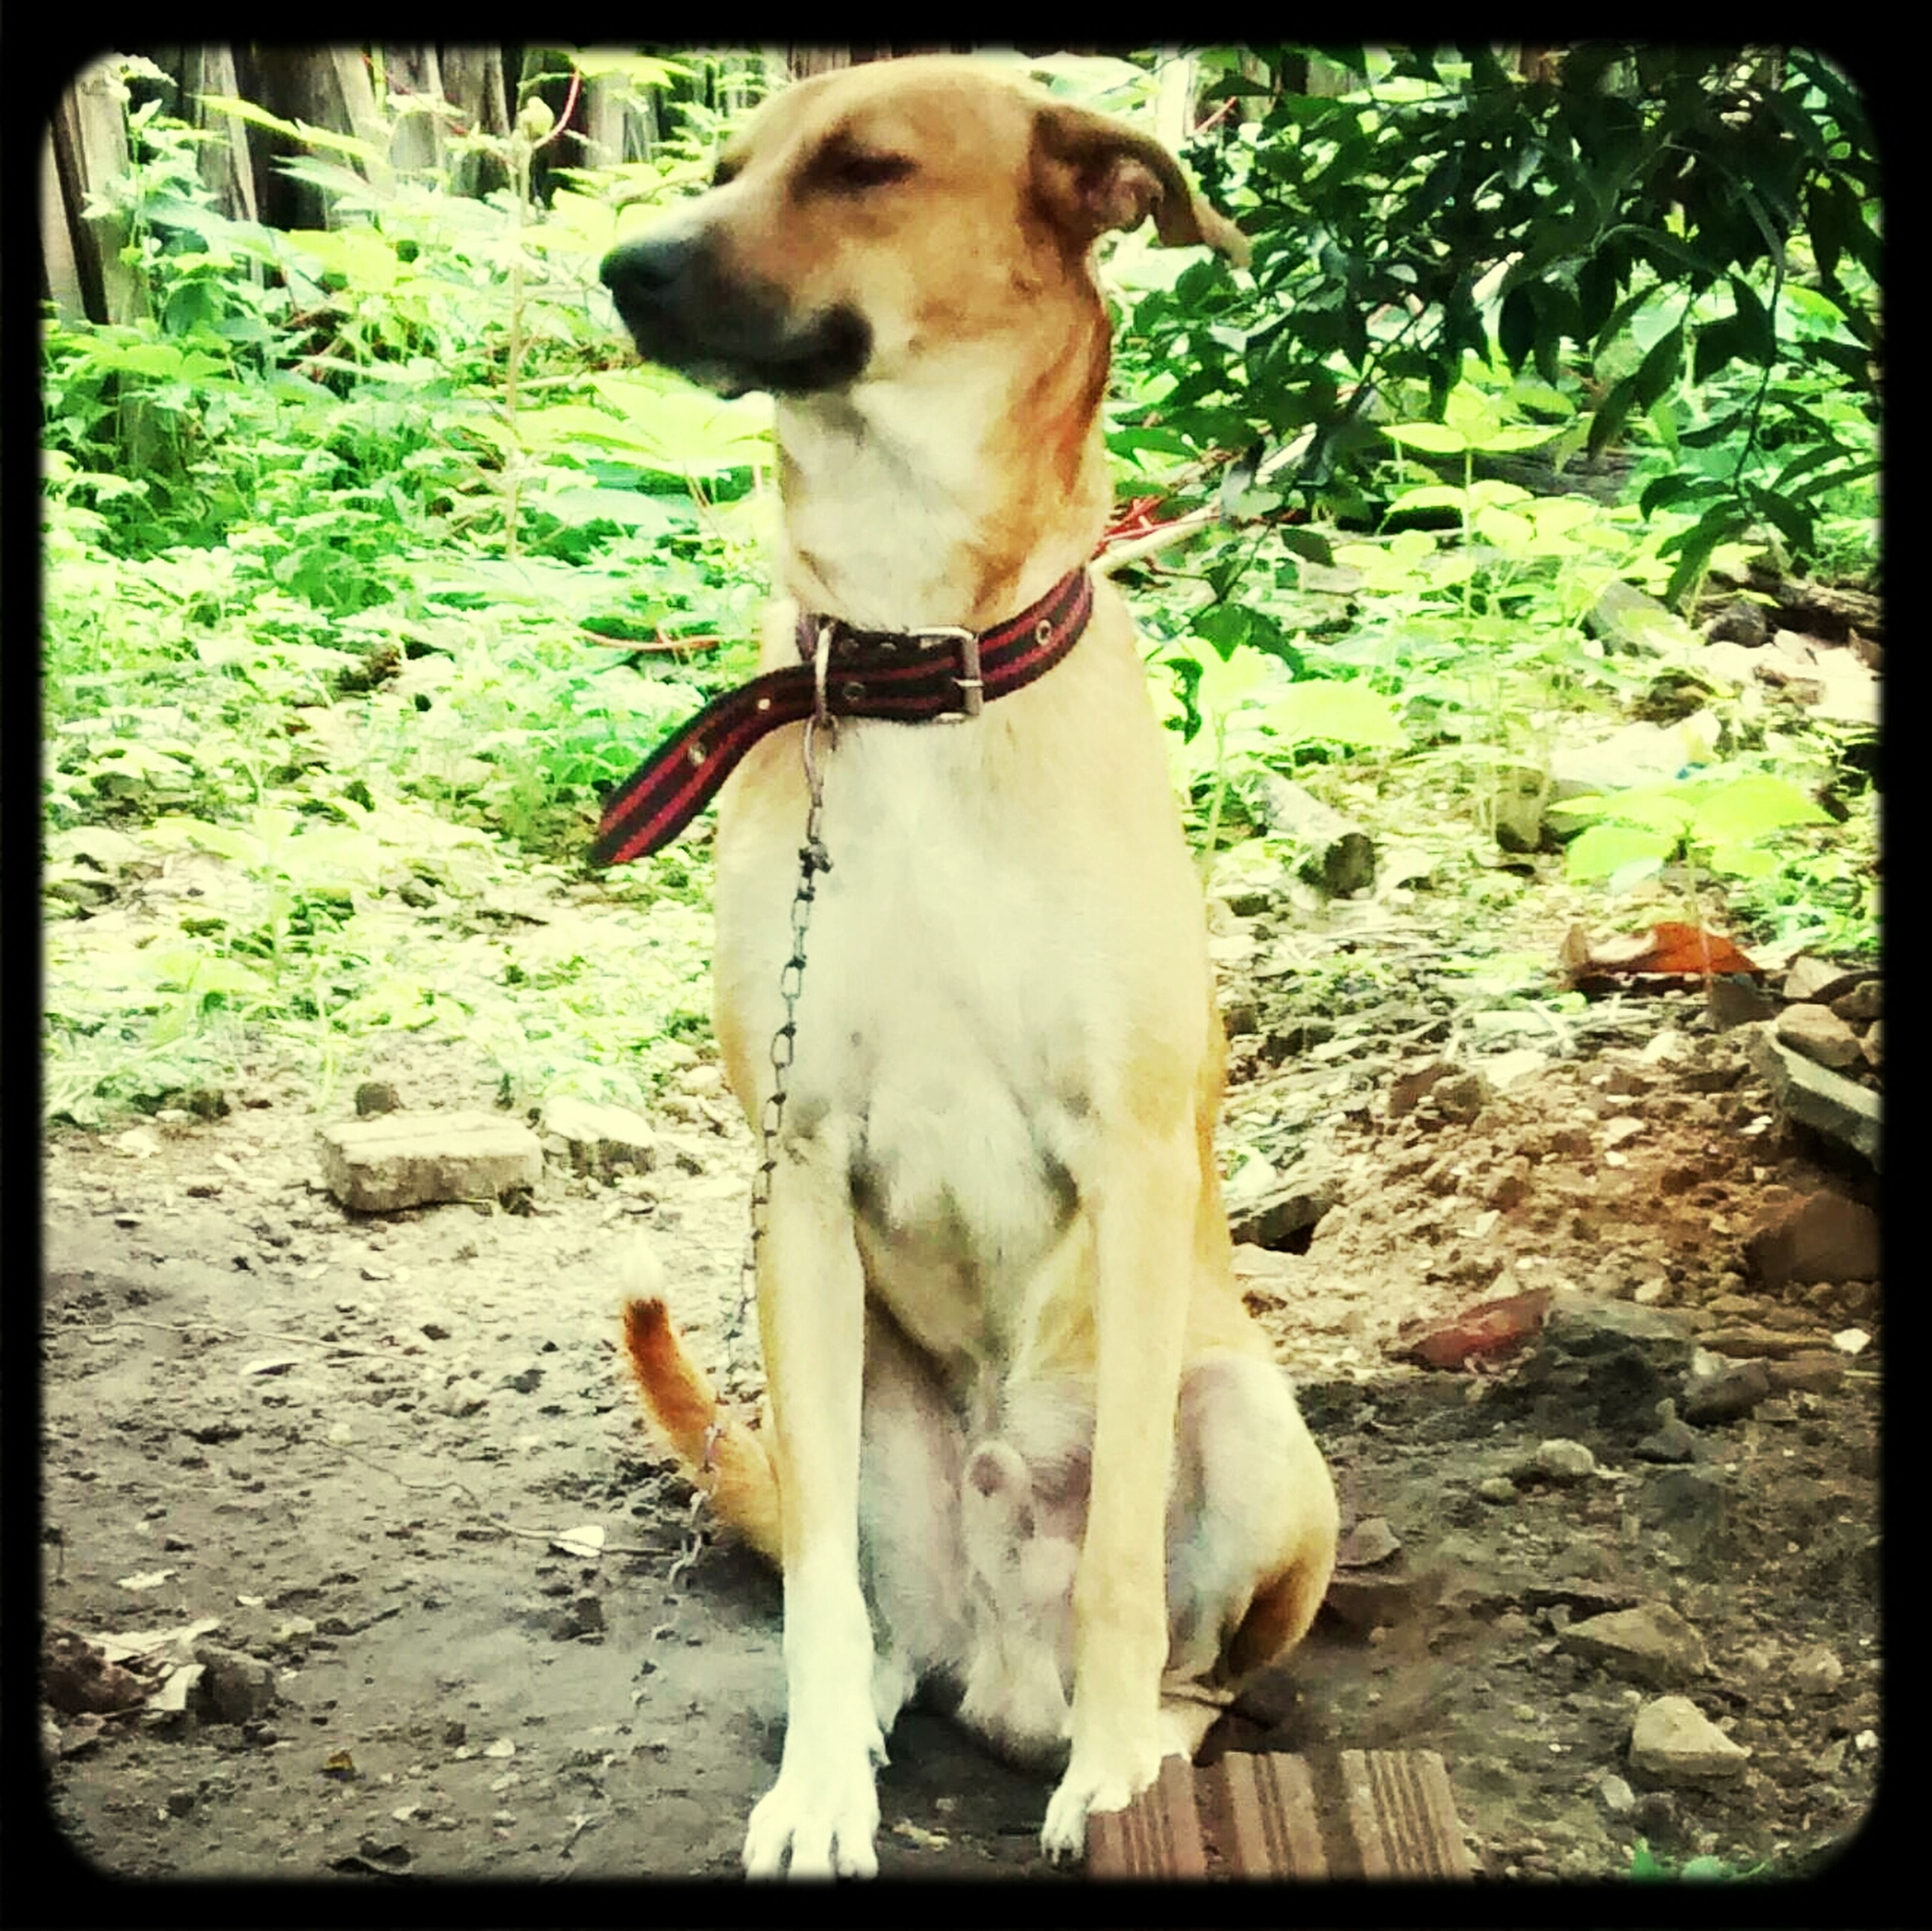 dog, animal themes, pets, domestic animals, one animal, mammal, transfer print, auto post production filter, pet collar, full length, sitting, day, zoology, brown, outdoors, no people, standing, looking at camera, animal head